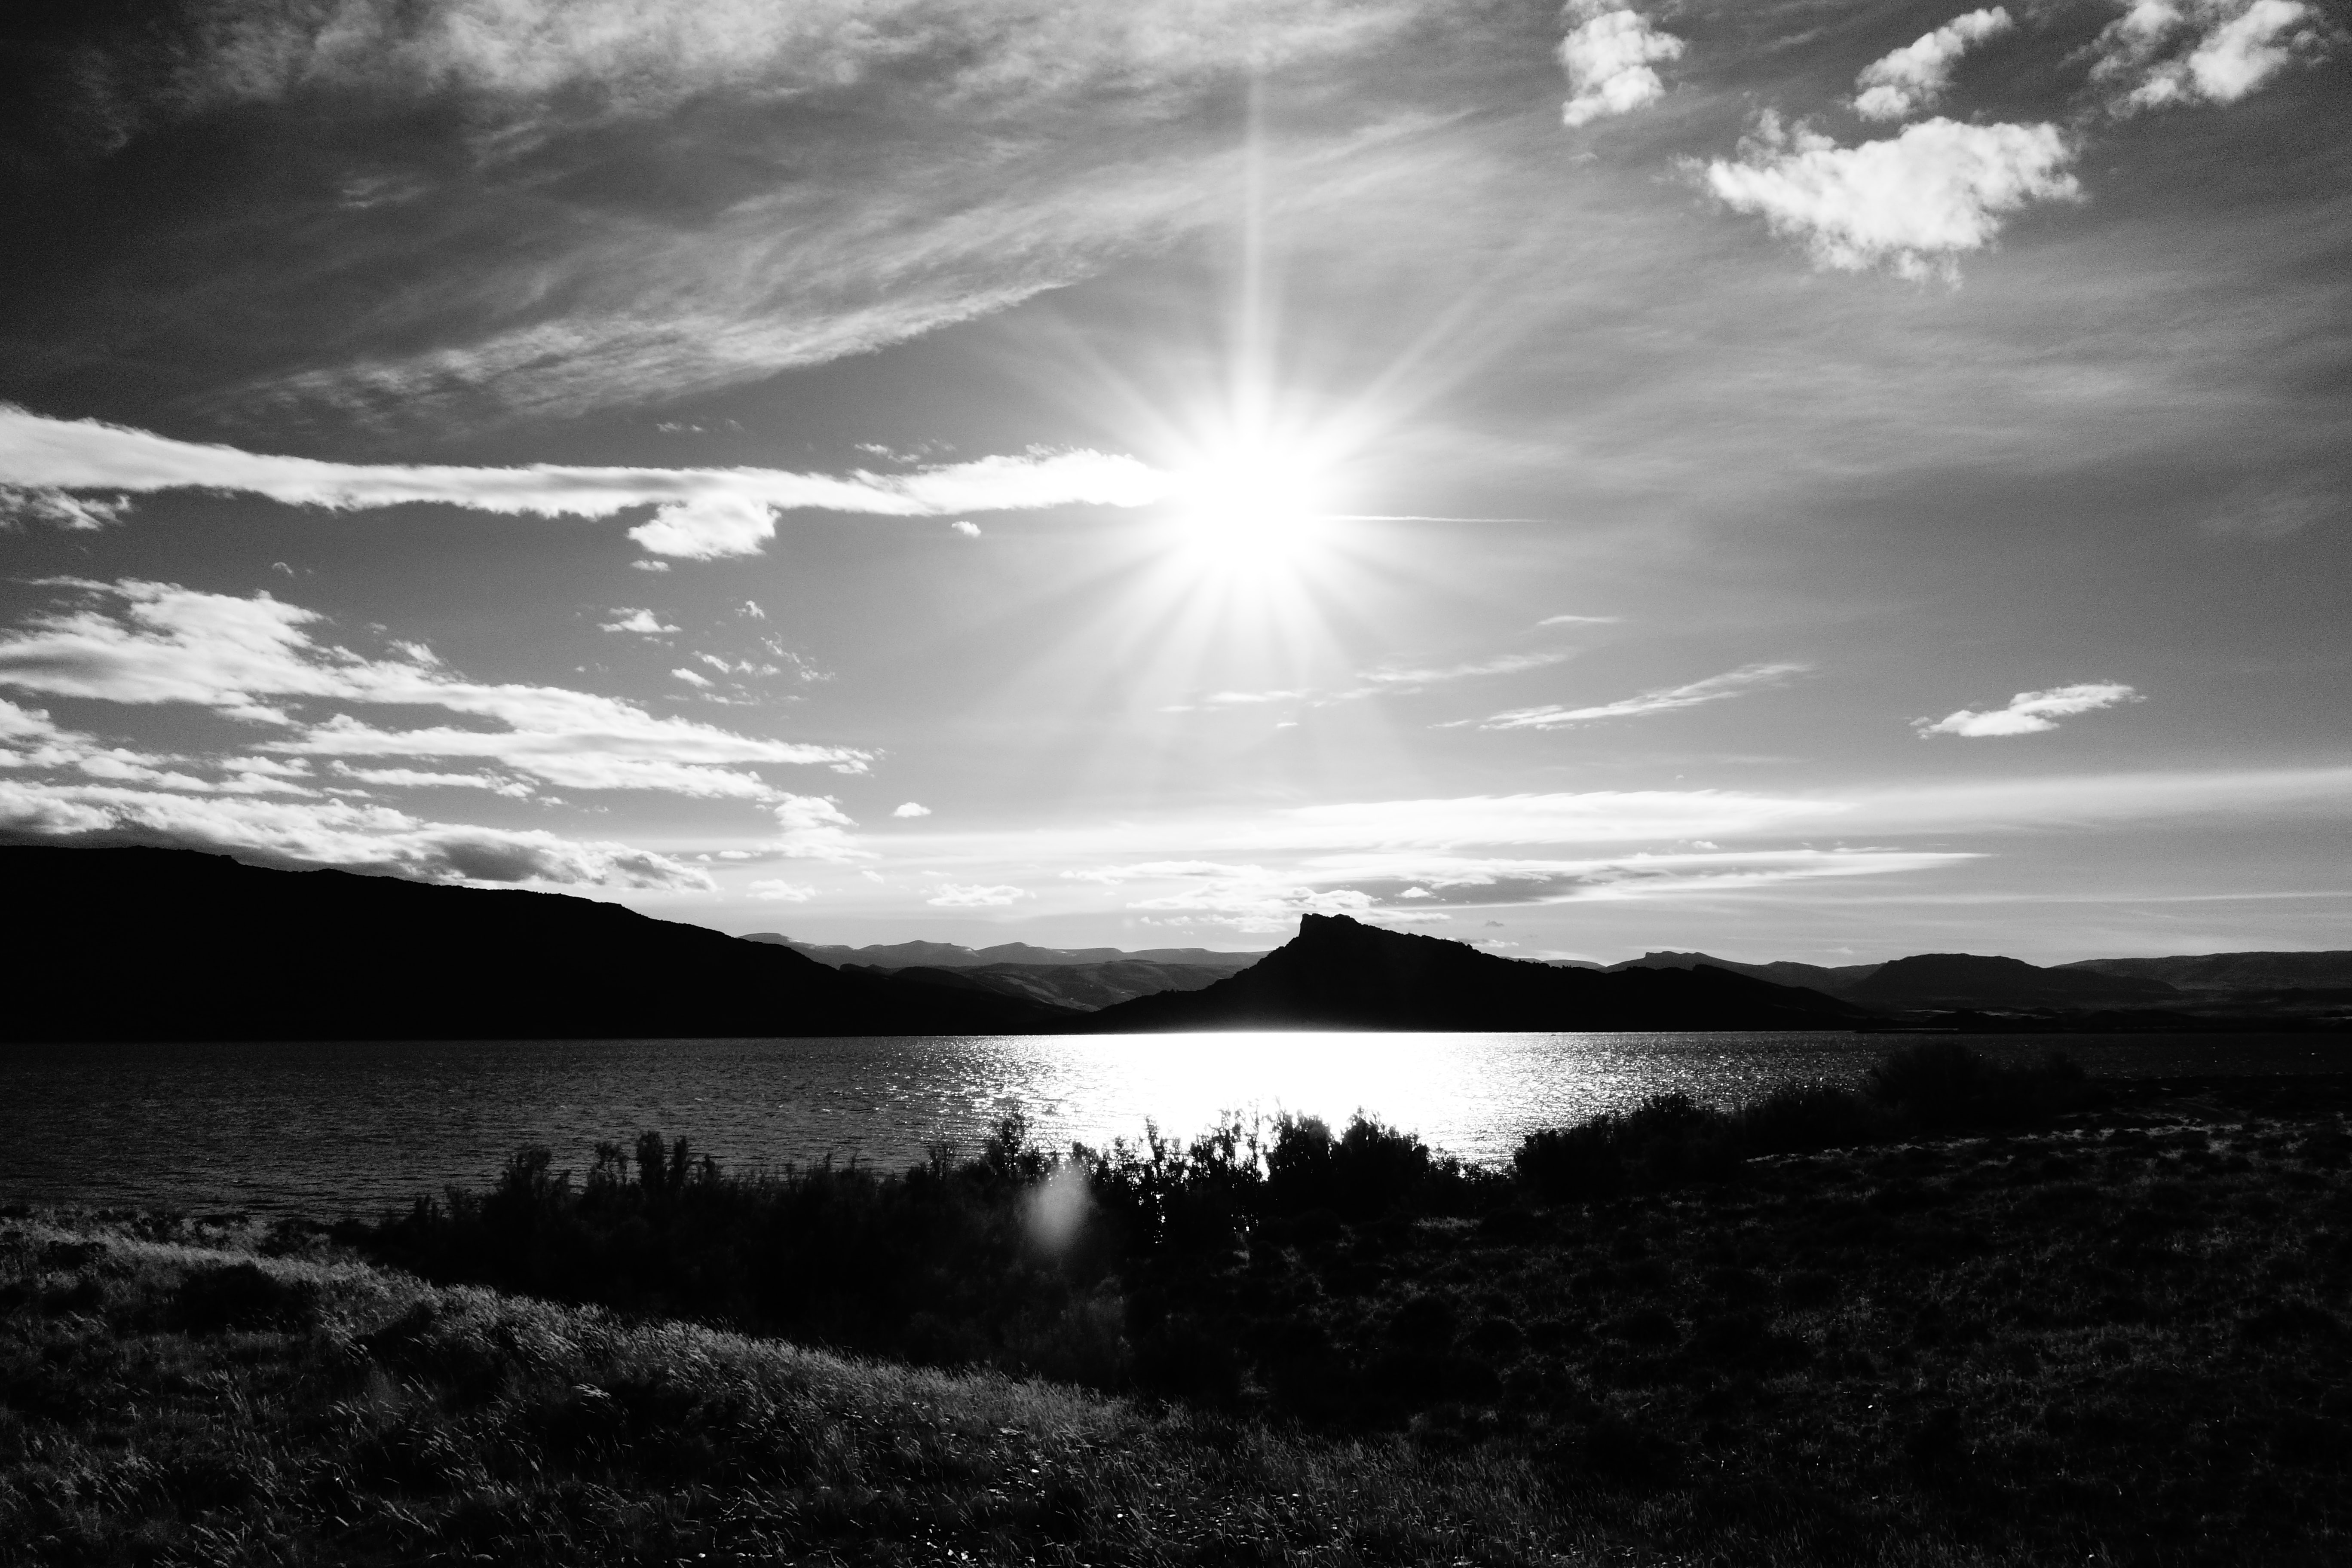 grayscale photography of body of water near mountain